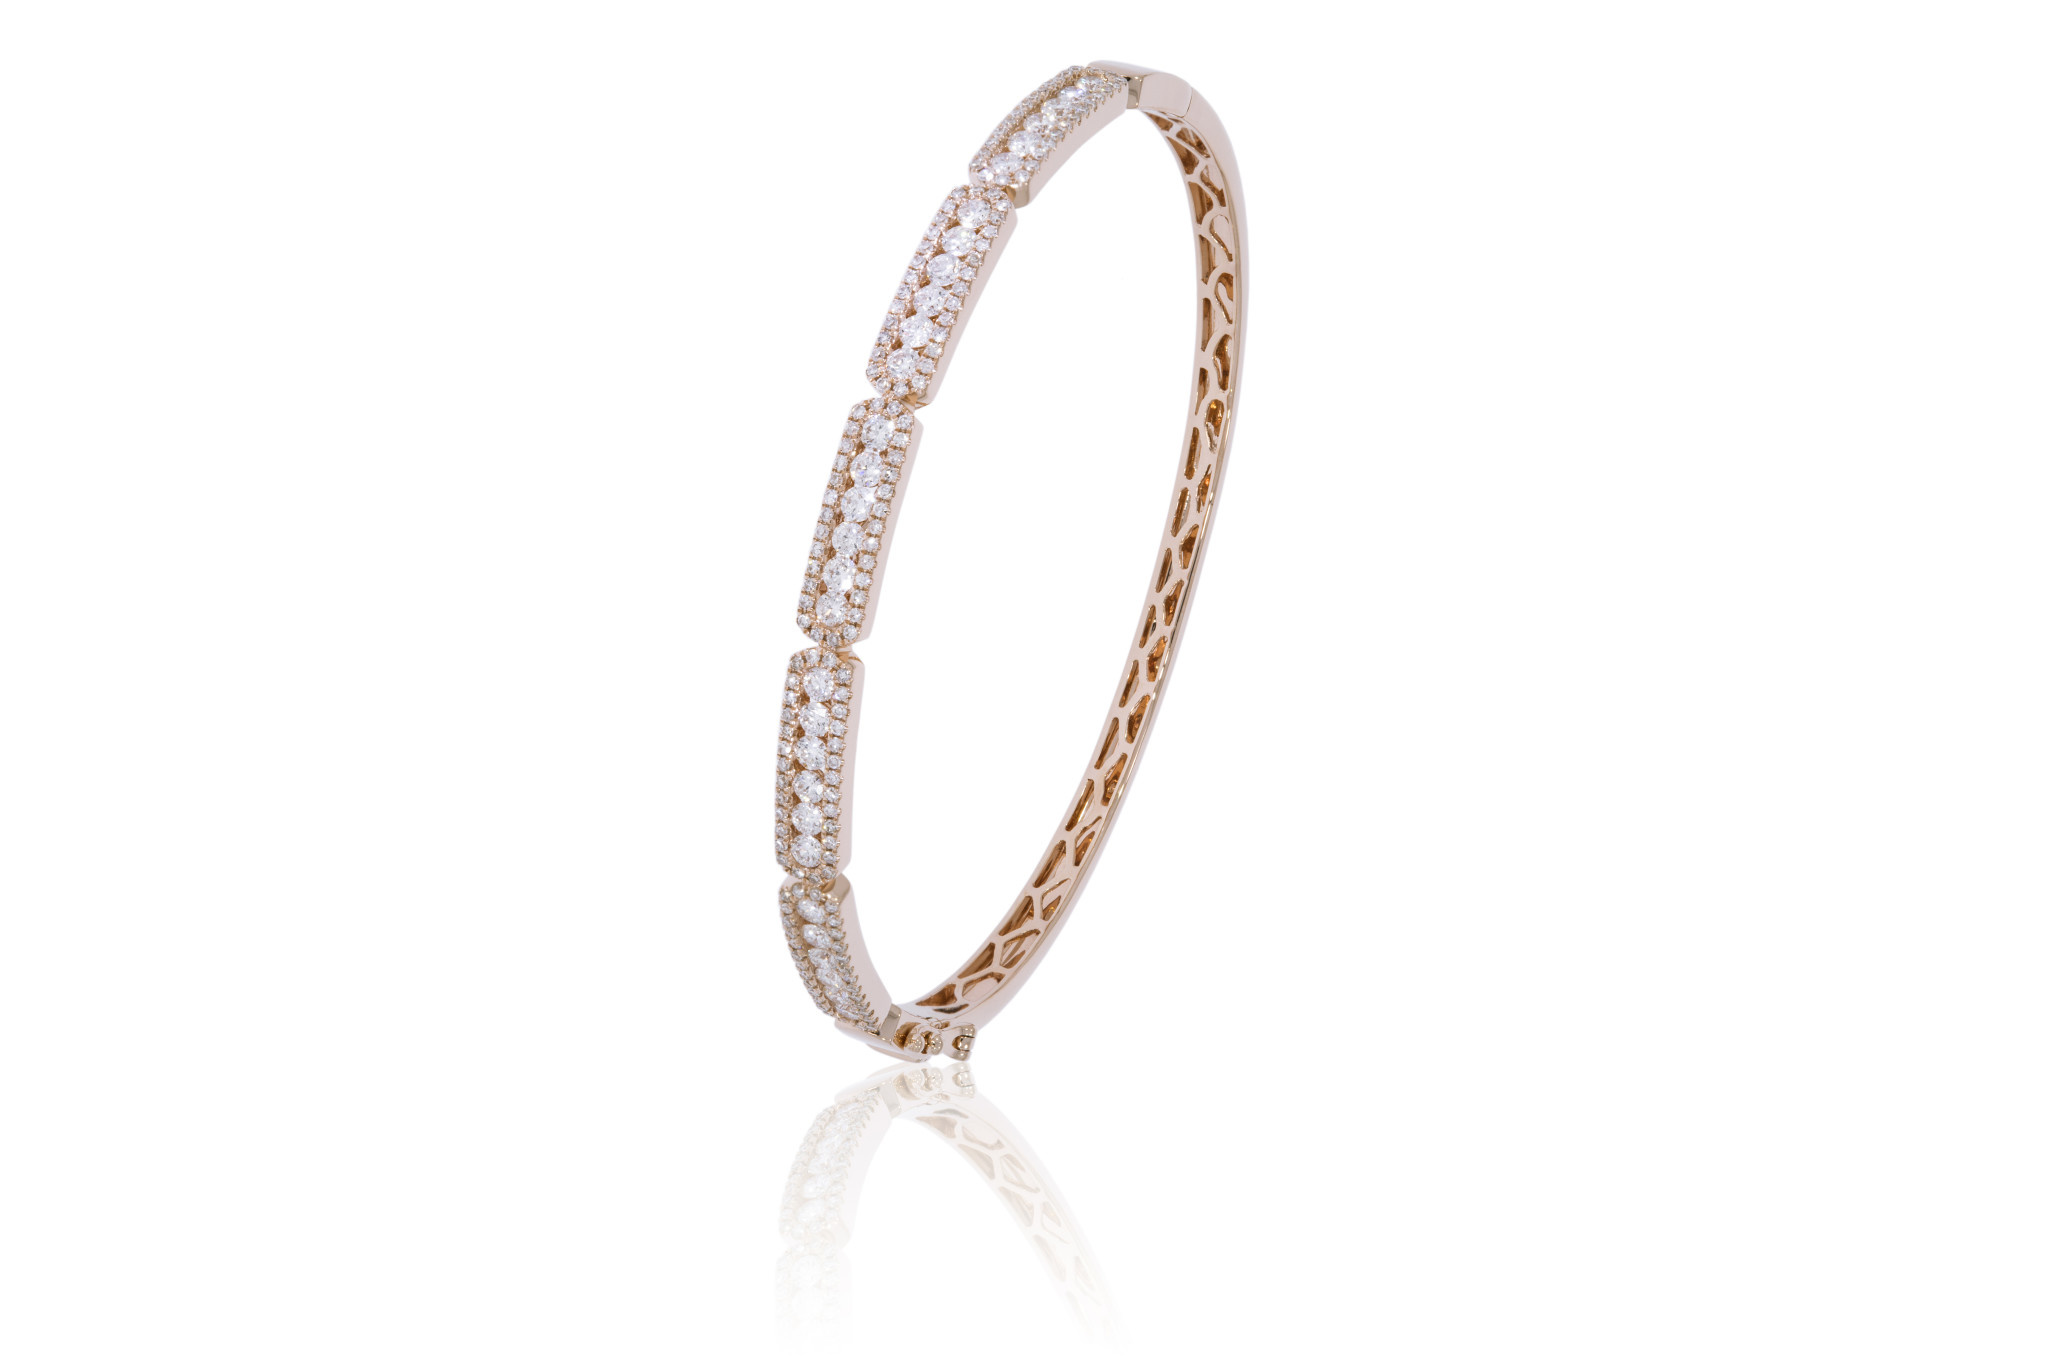 Luvente Pave Diamond Sectioned Rose Gold Bangle